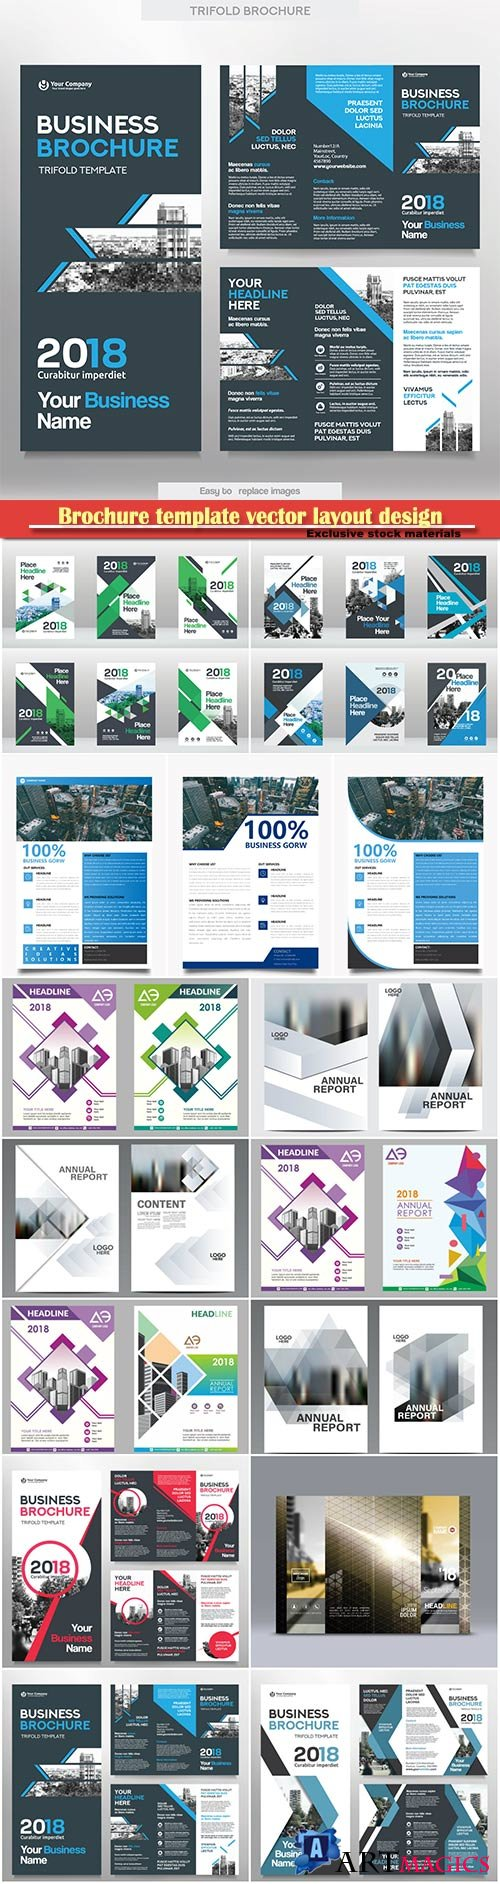 Brochure template vector layout design, corporate business annual report, magazine, flyer mockup # 125